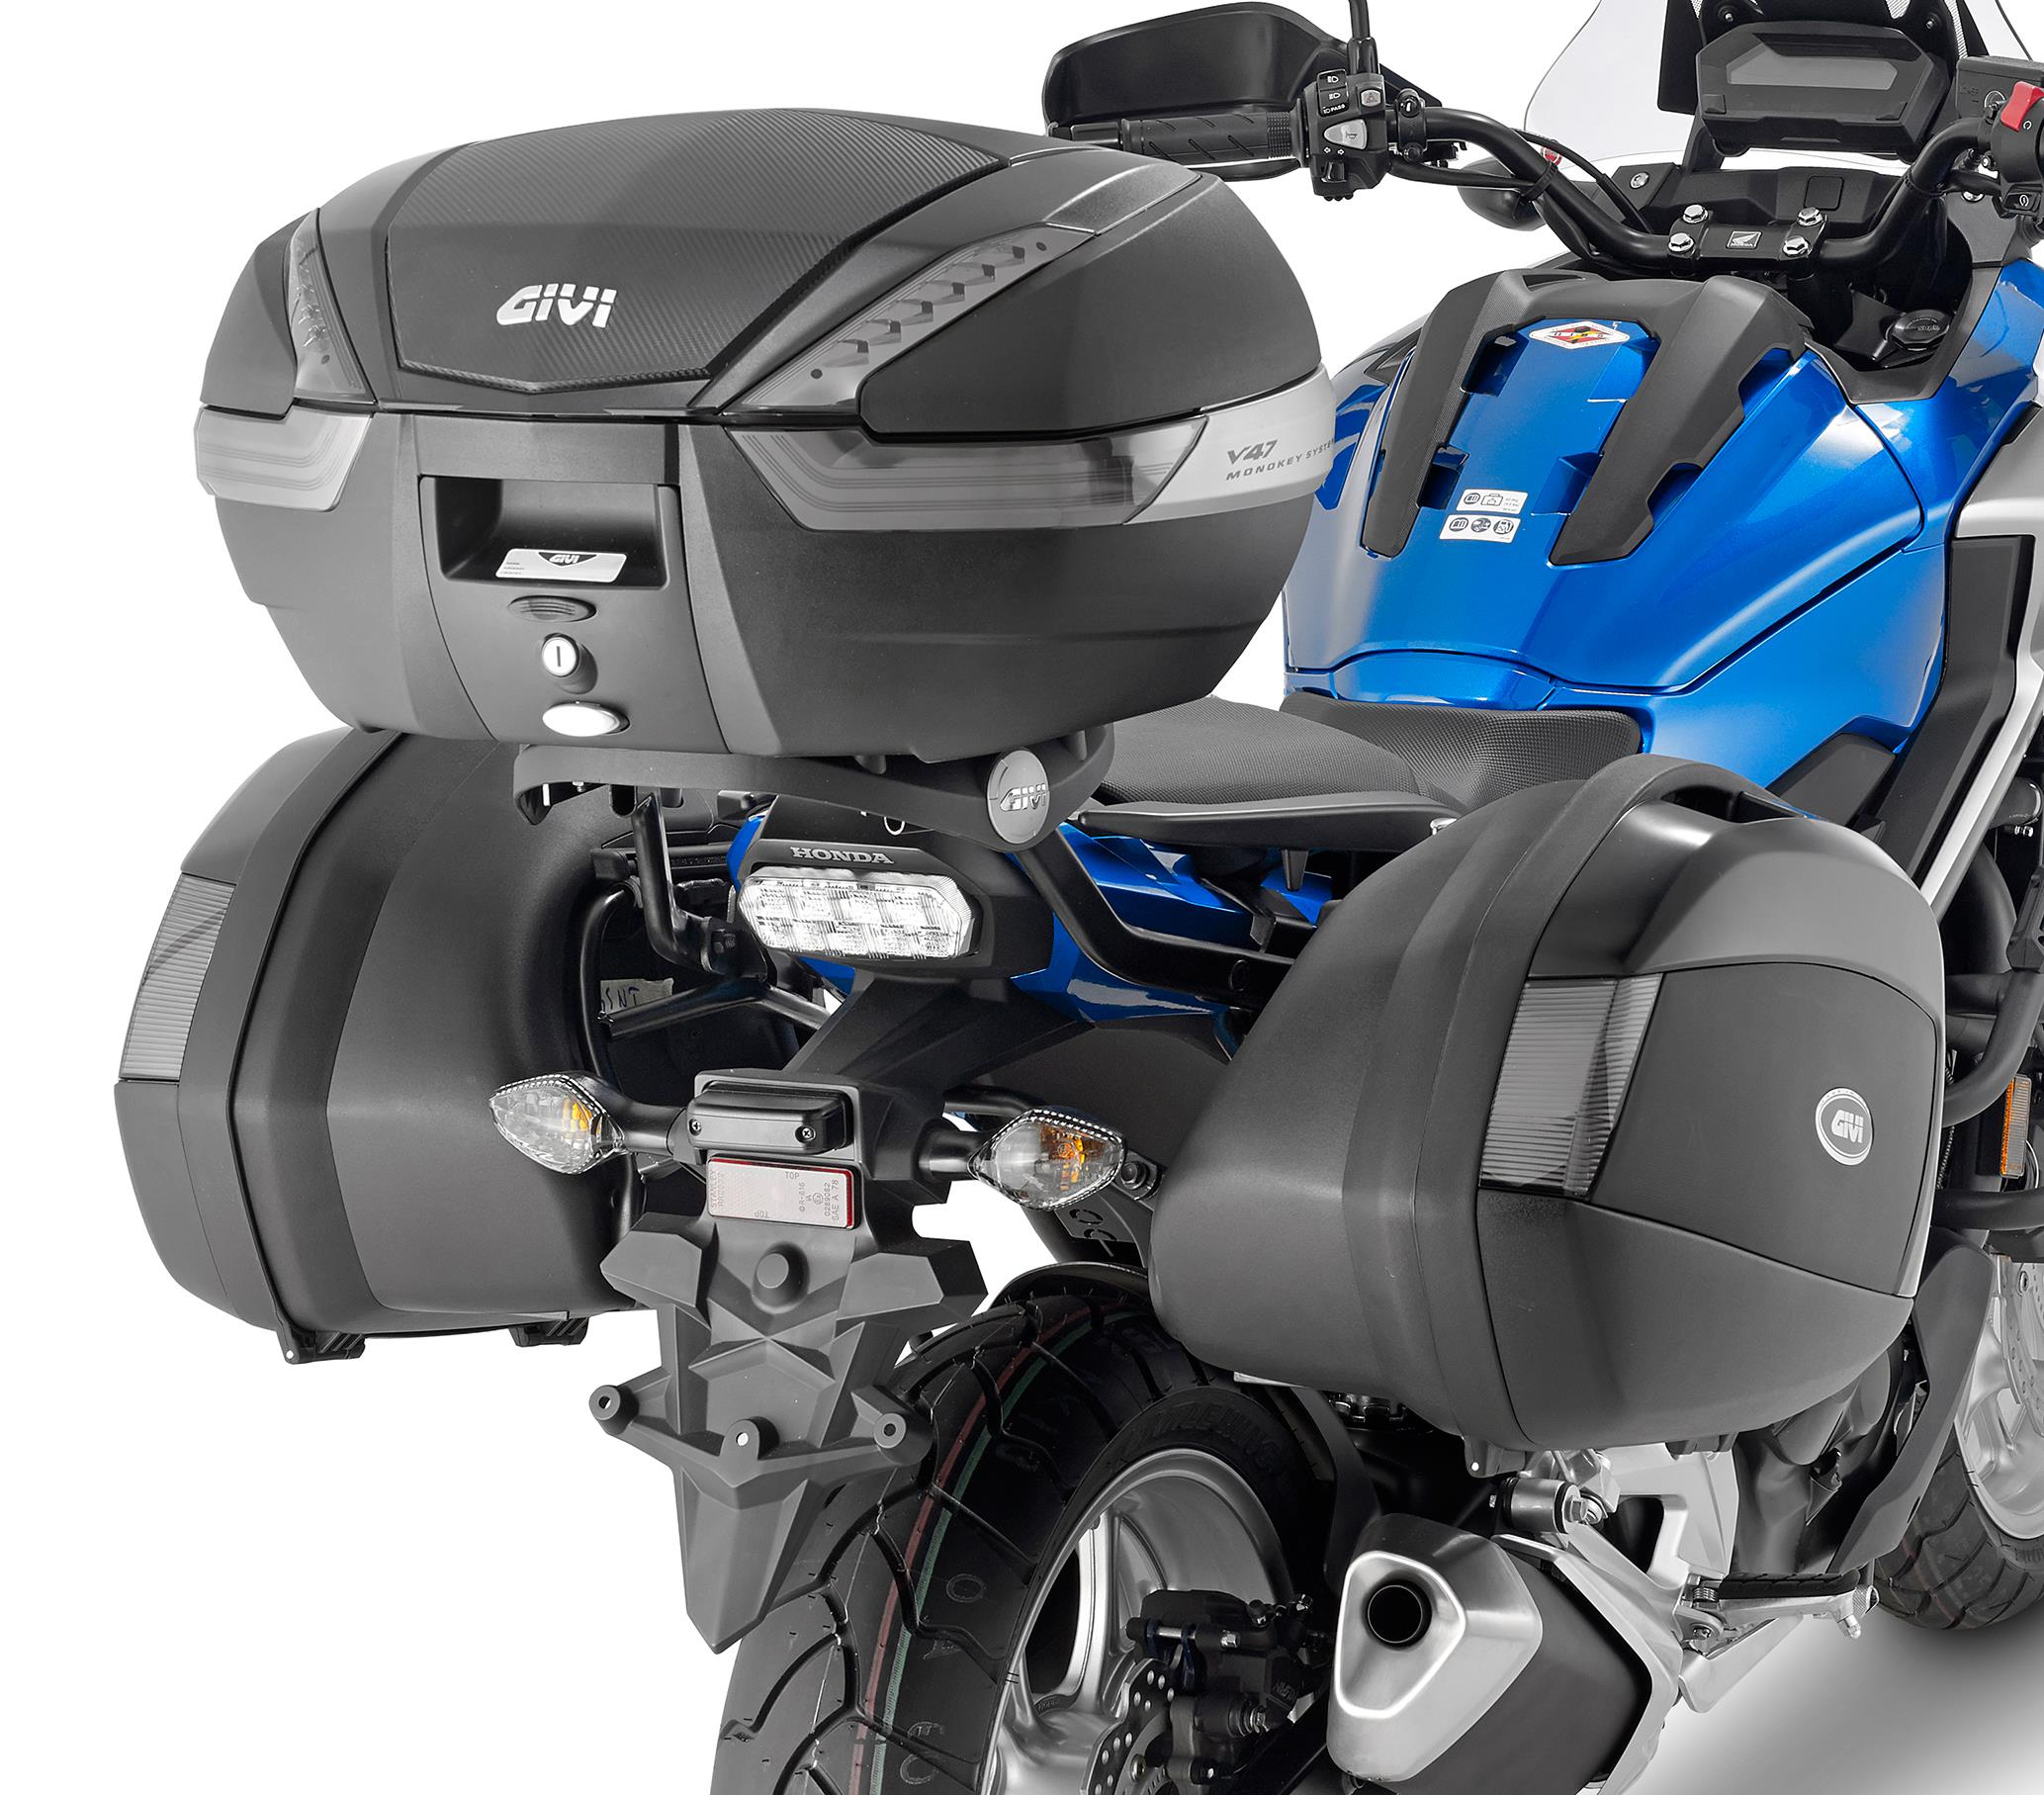 Motorcycle Parts In Germantown Mail: Givi PLX1146 V35 Pannier Holders